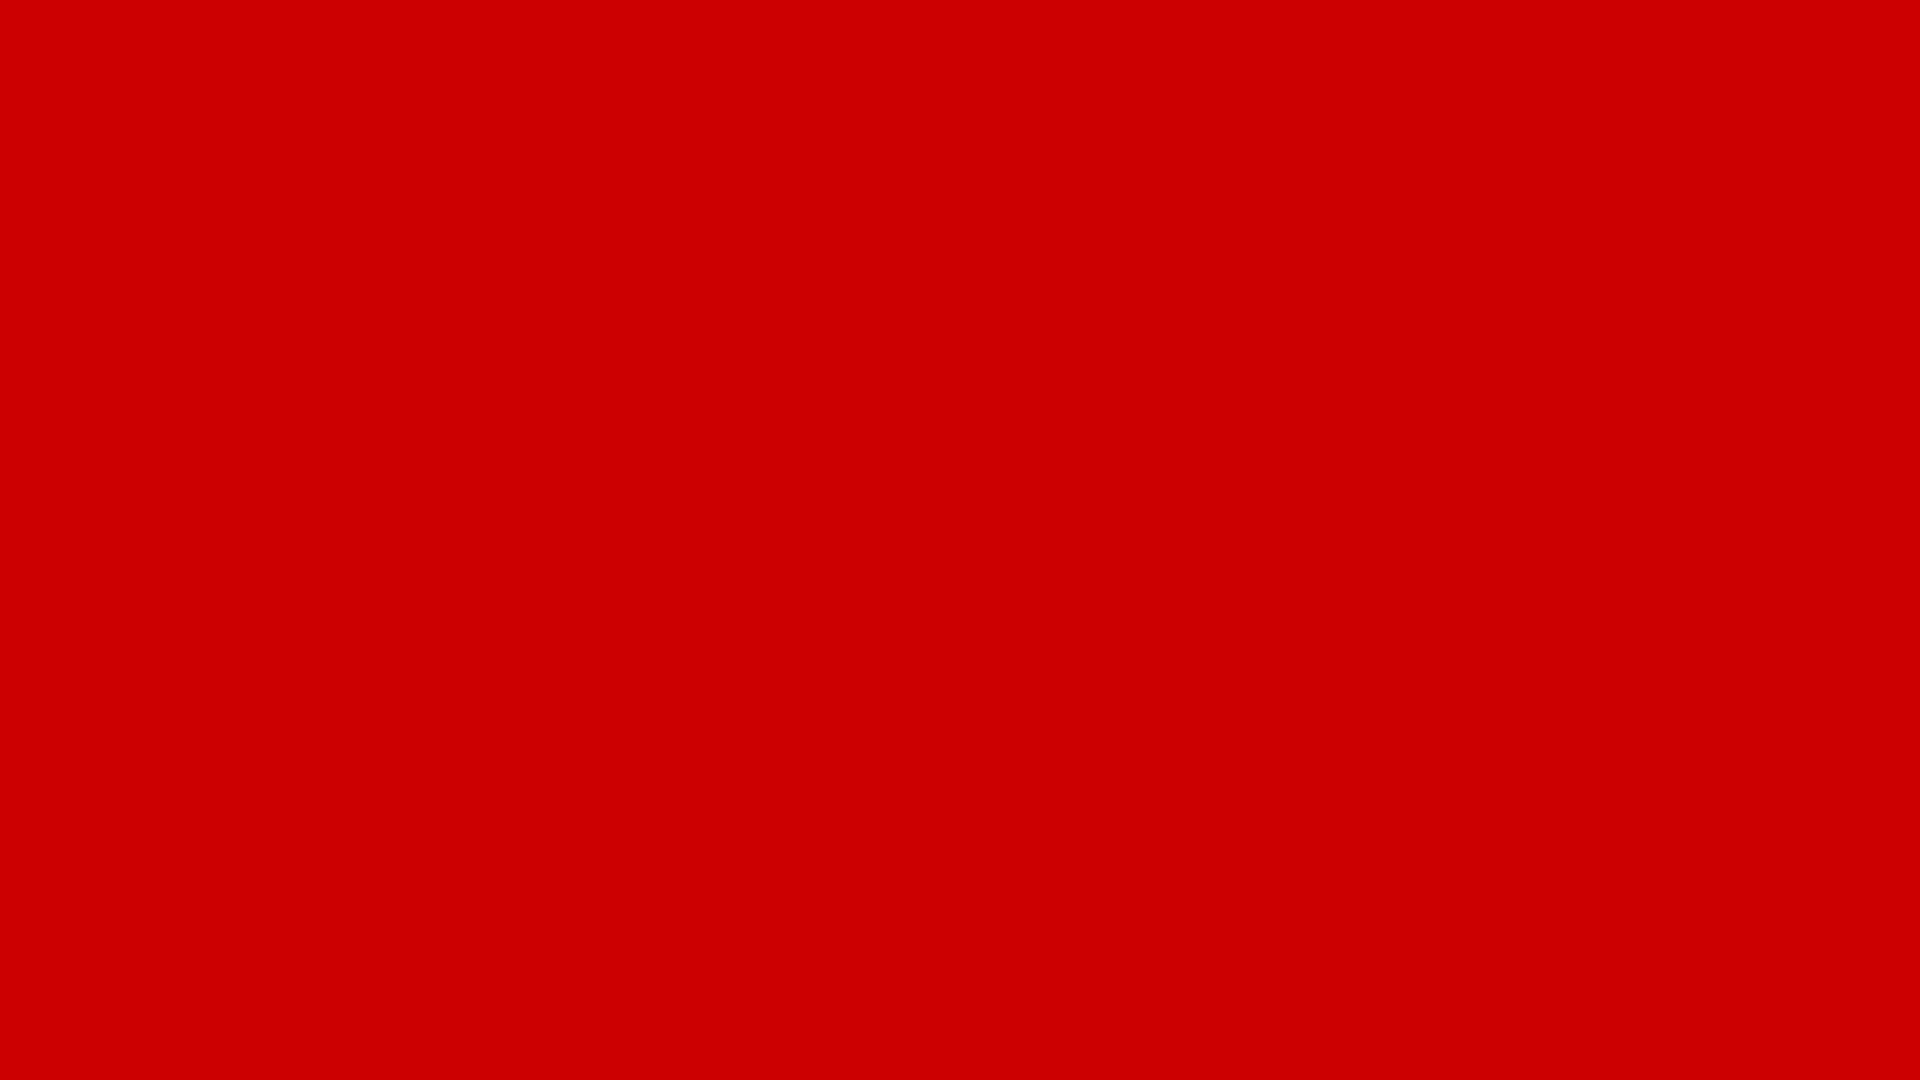 1920x1080 Boston University Red Solid Color Background